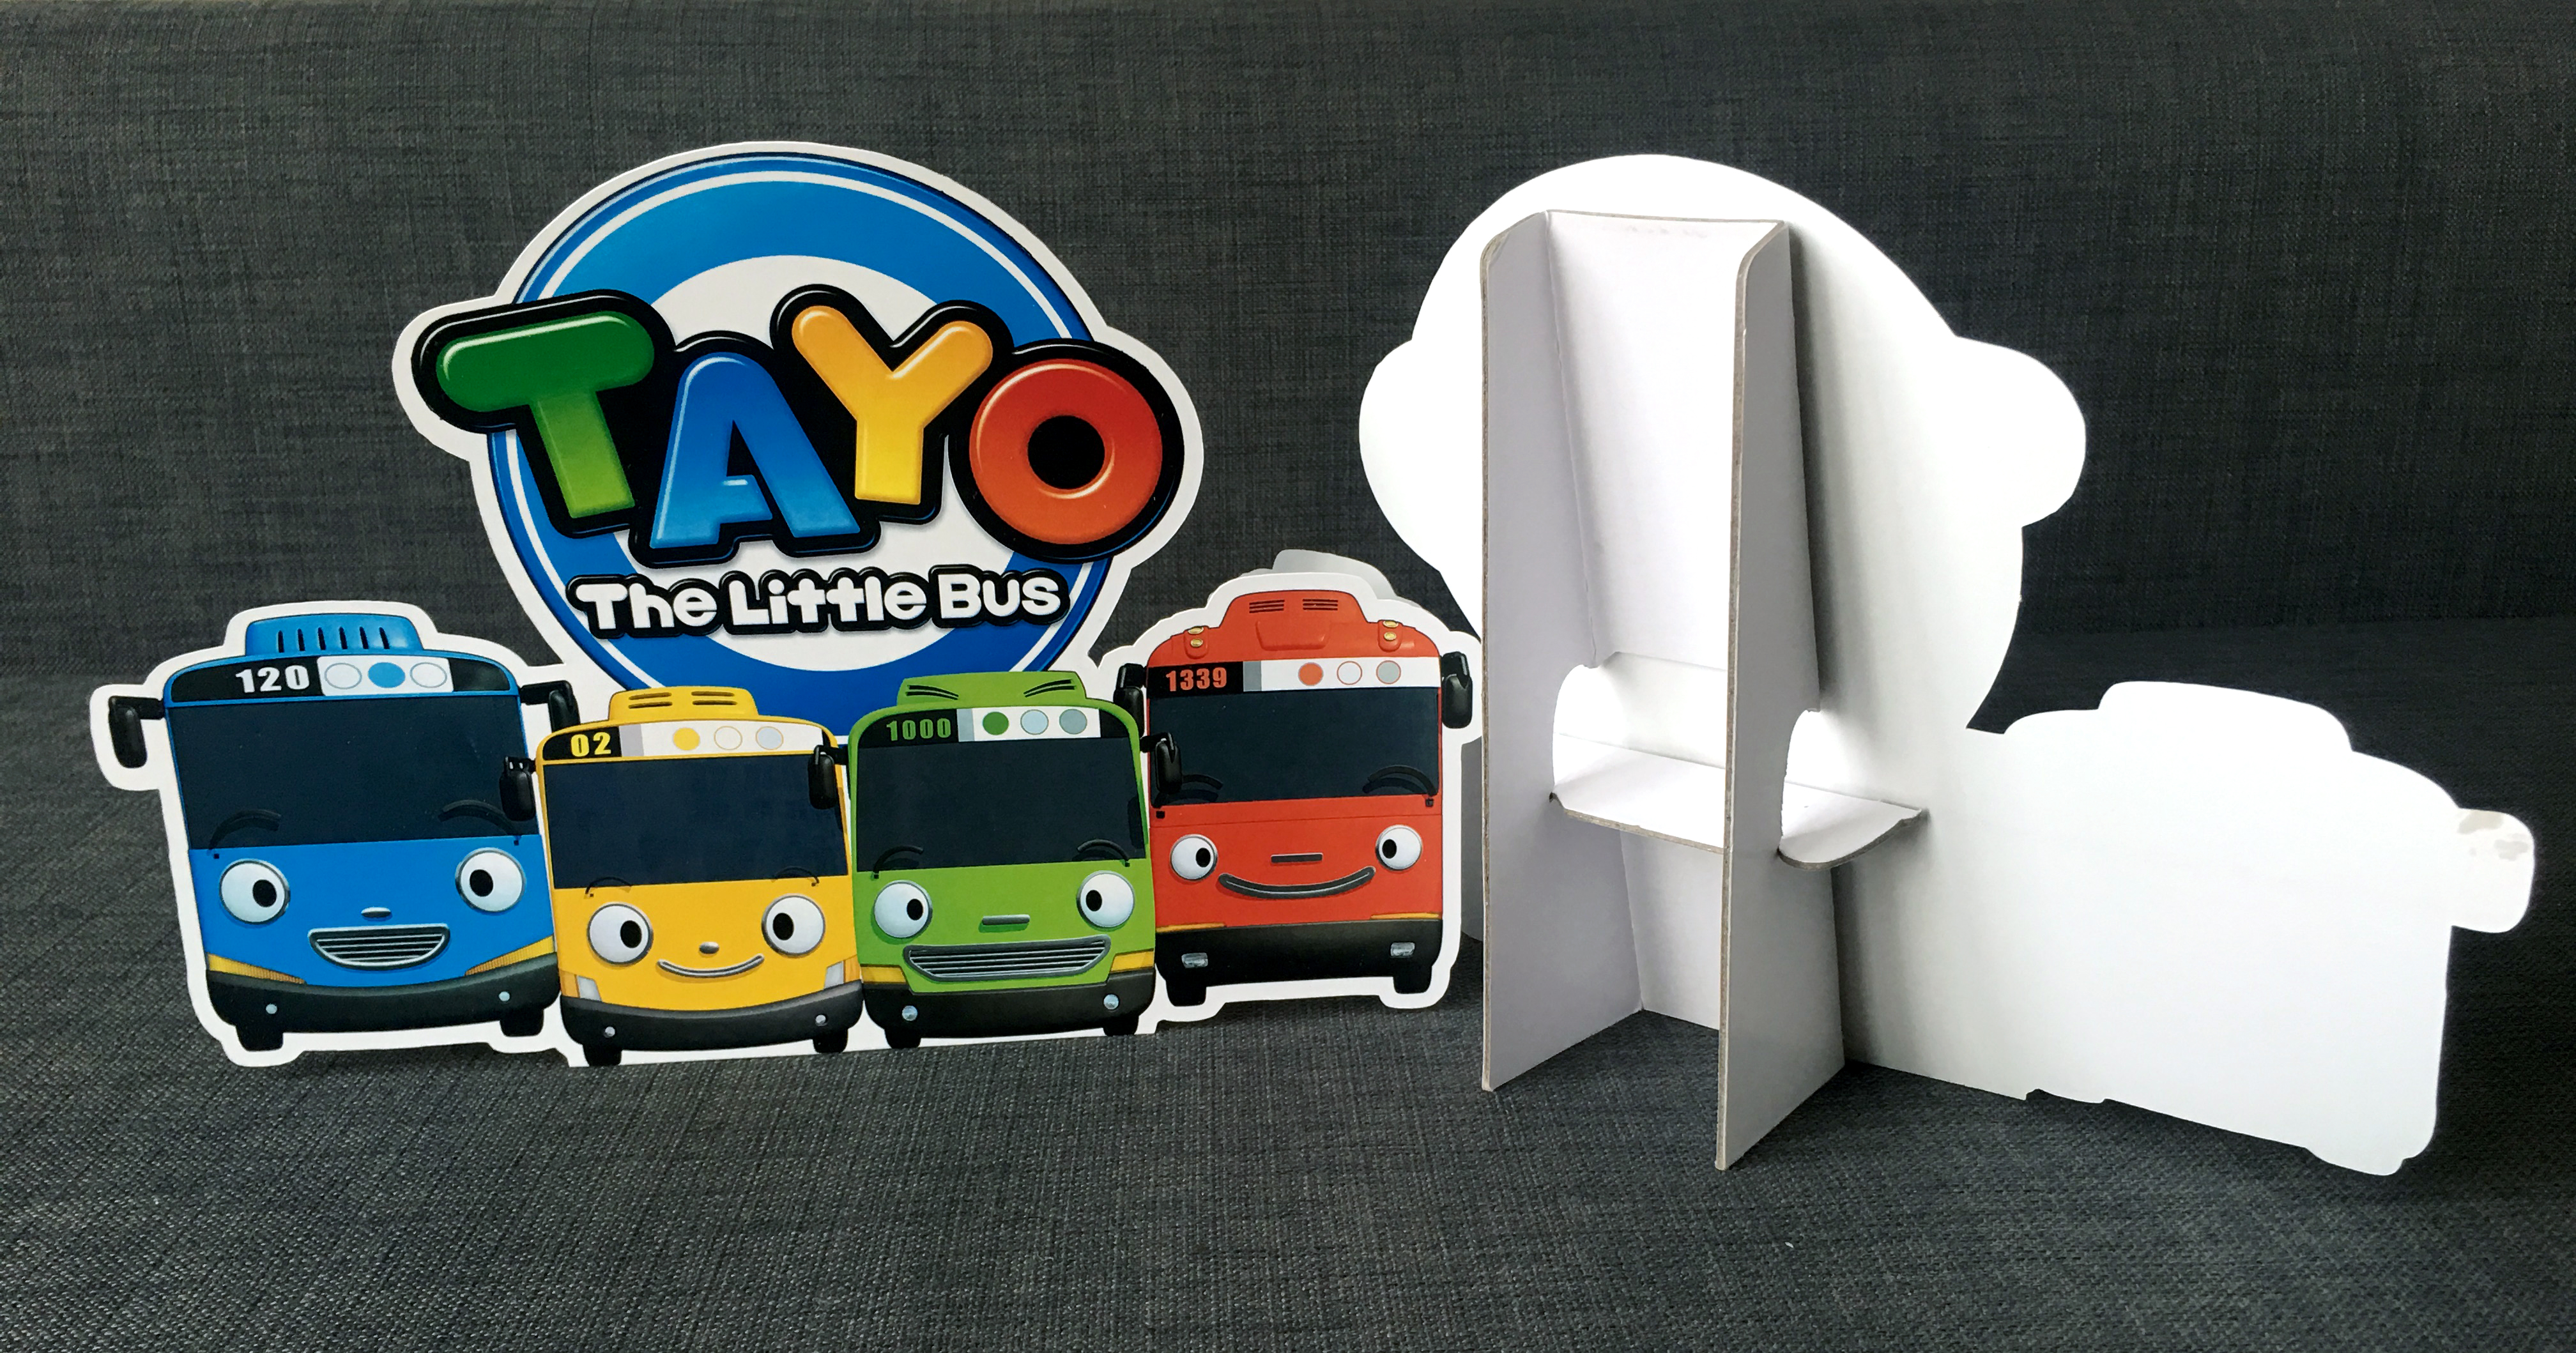 a tayo the little bus personalised customised printed foamboard standee stickers theme kids birthday party supplies decorations ideas bags invitations favors hat balloons toys malaysia